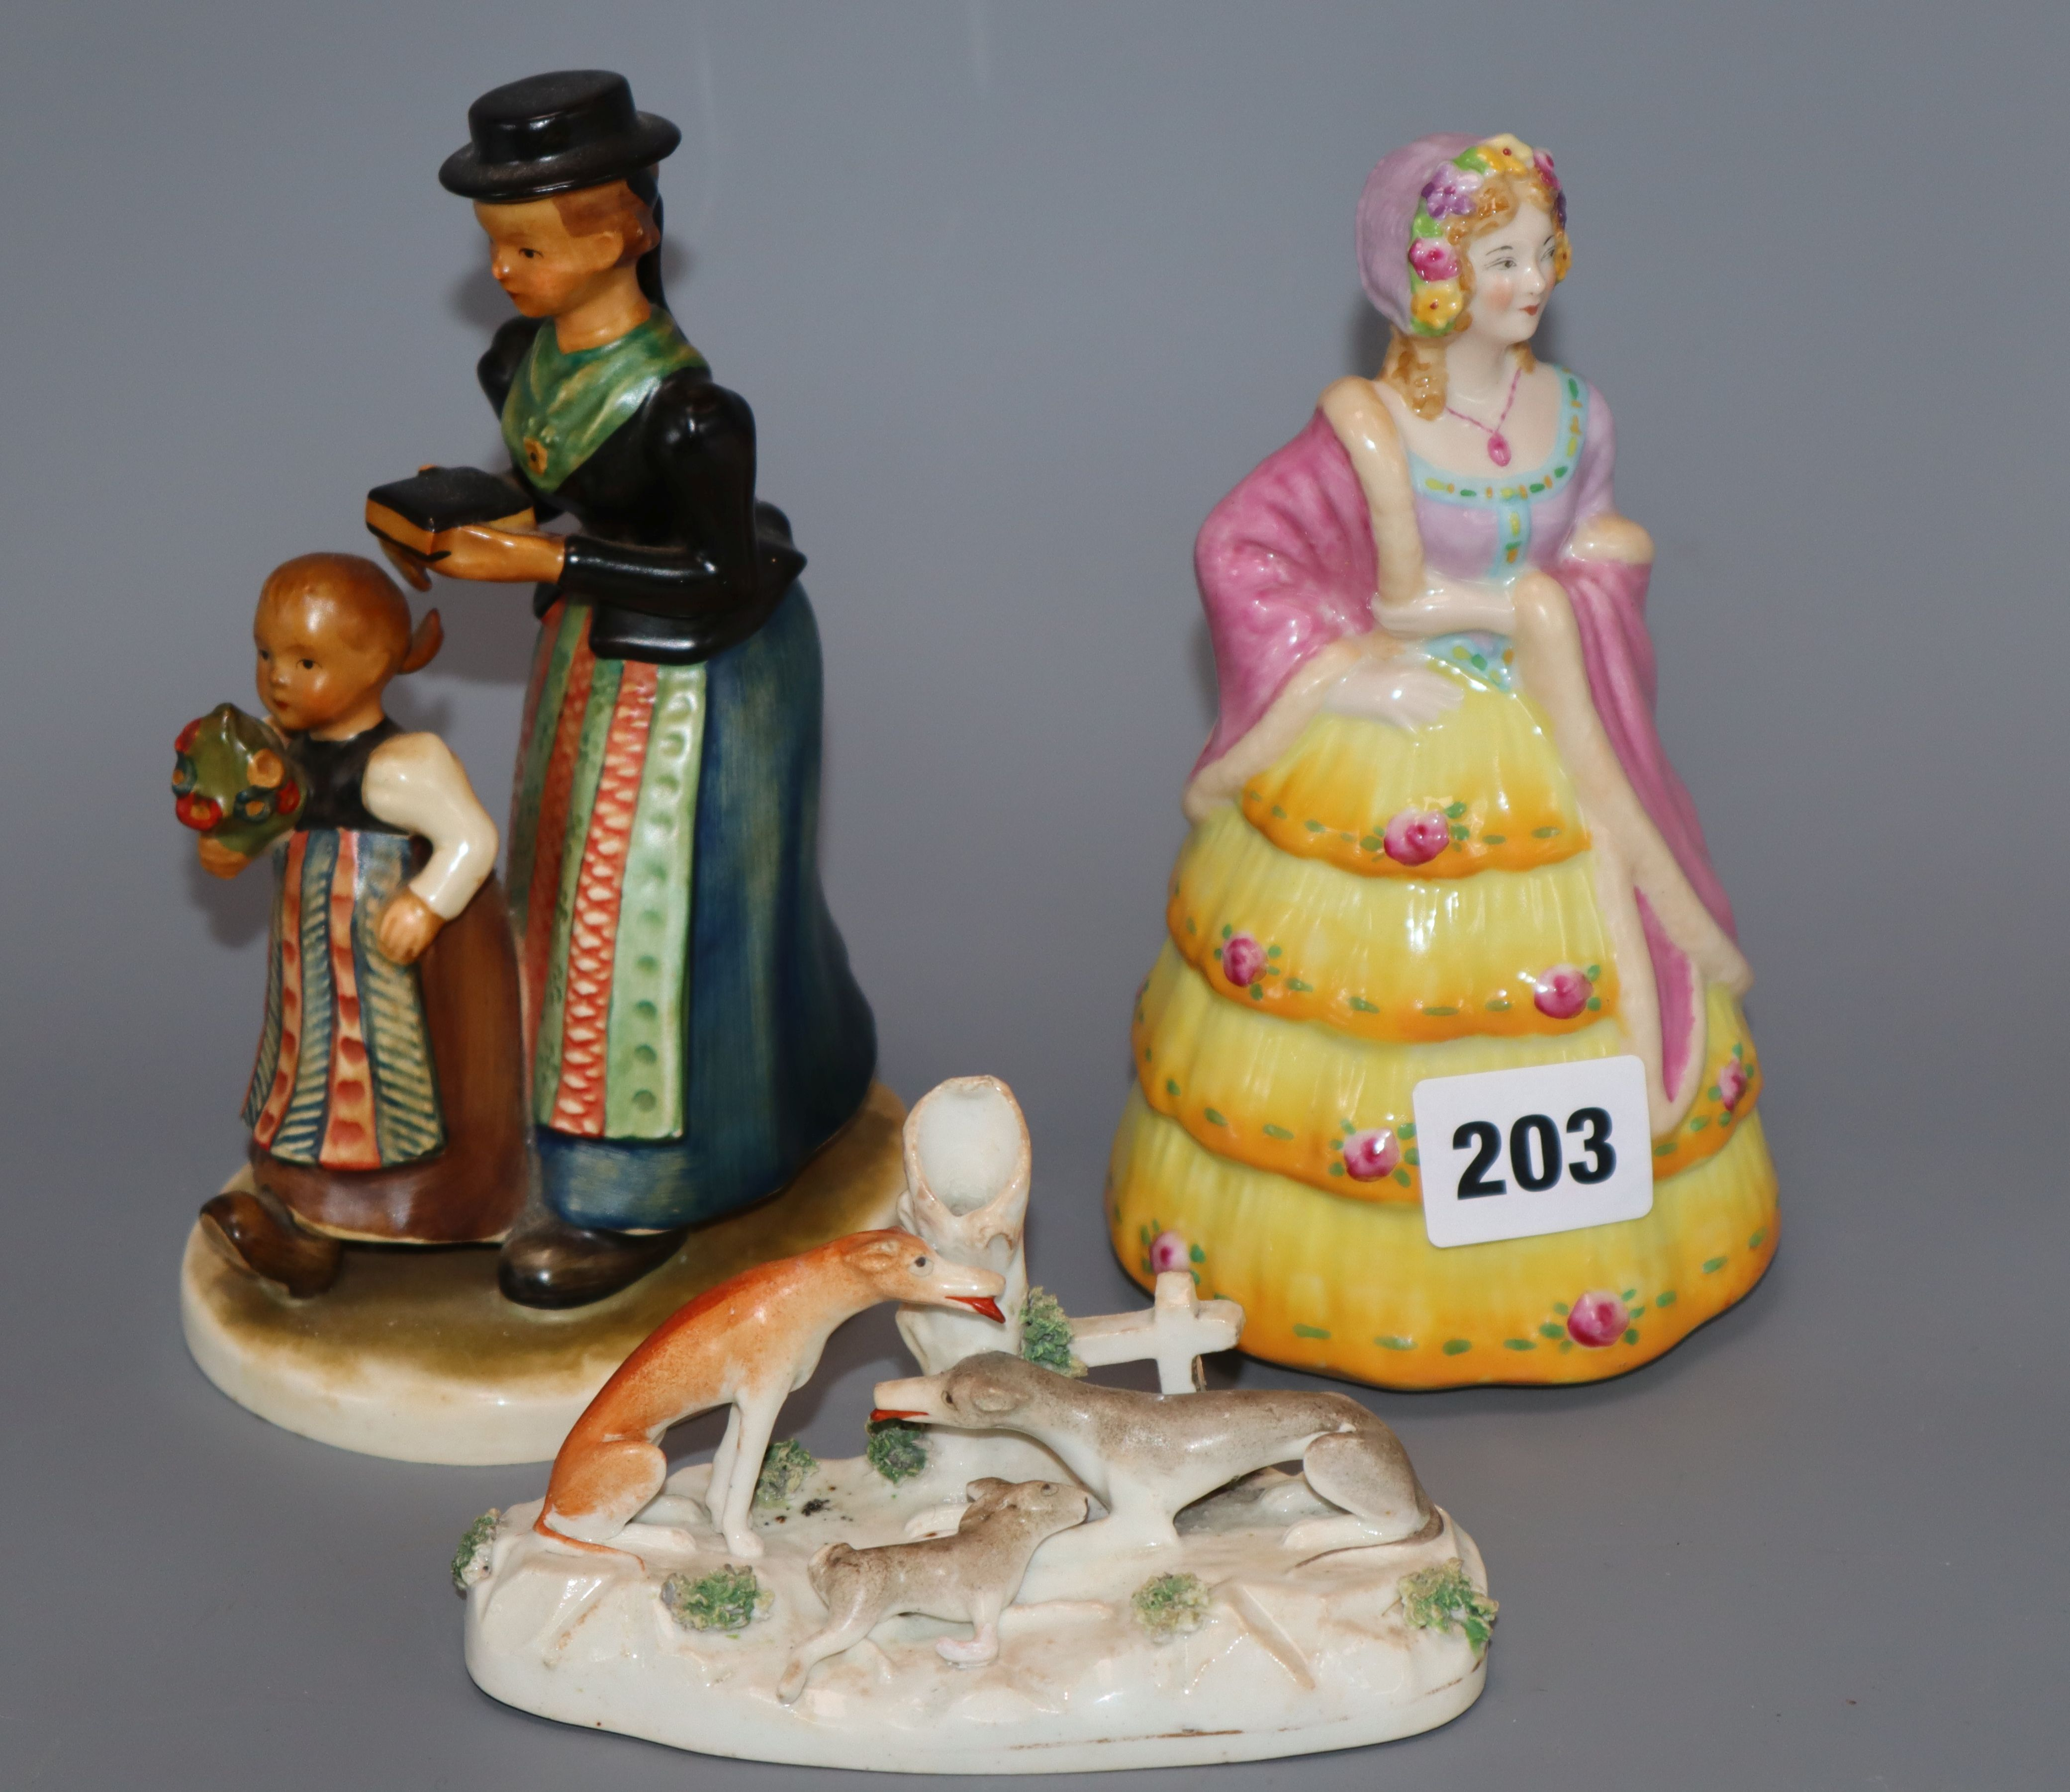 Lot 203 - A Goss Lady Betty figure, a Goebel group and a Staffordshire porcelain greyhound group, c.1830-50